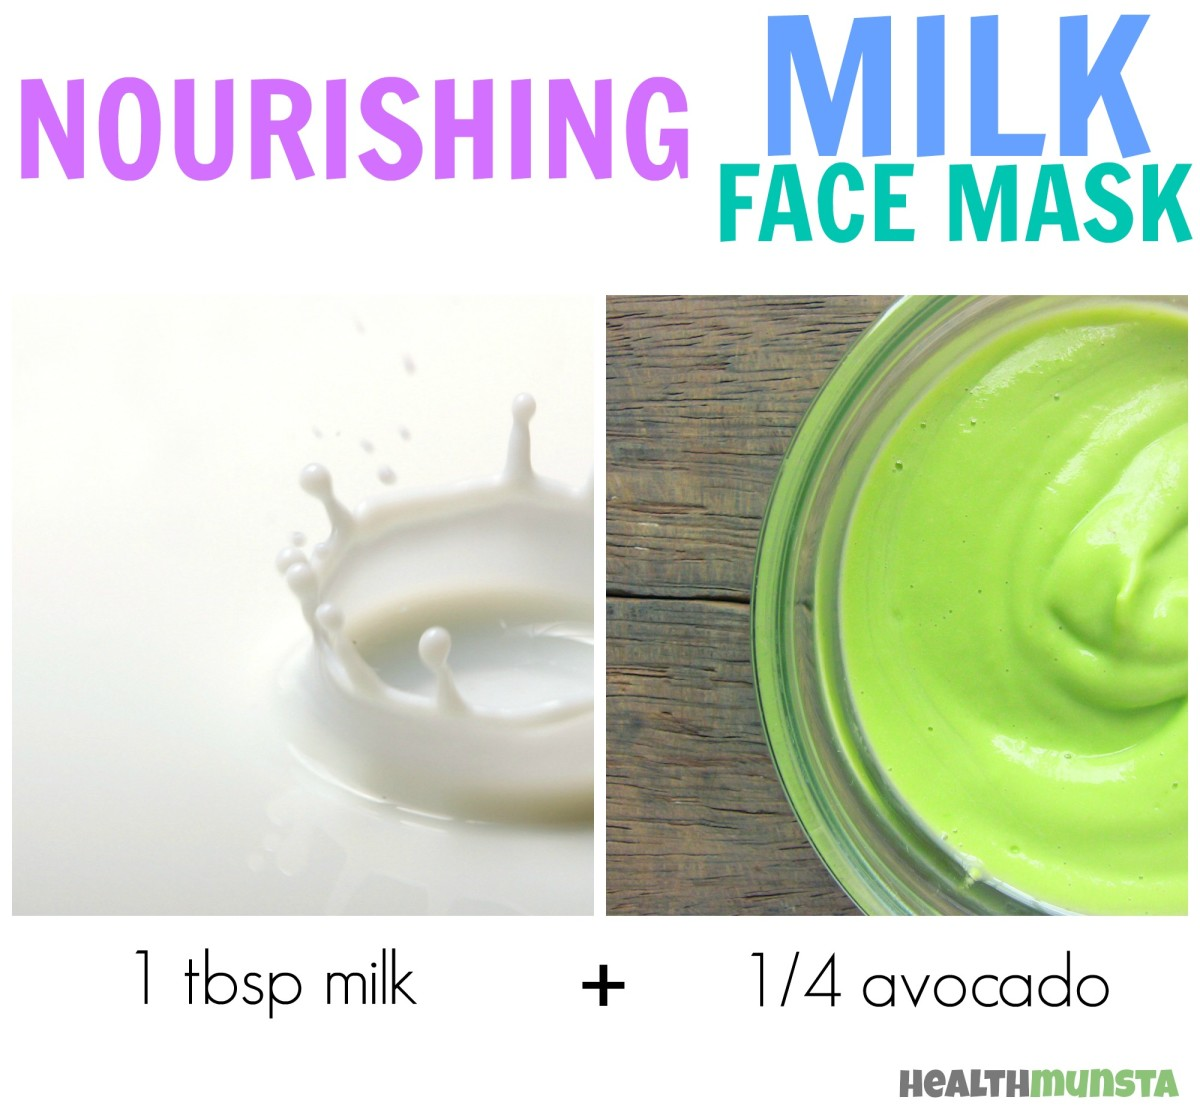 Avocado + Milk makes for a nourishing face mask that rehydrates and renews skin